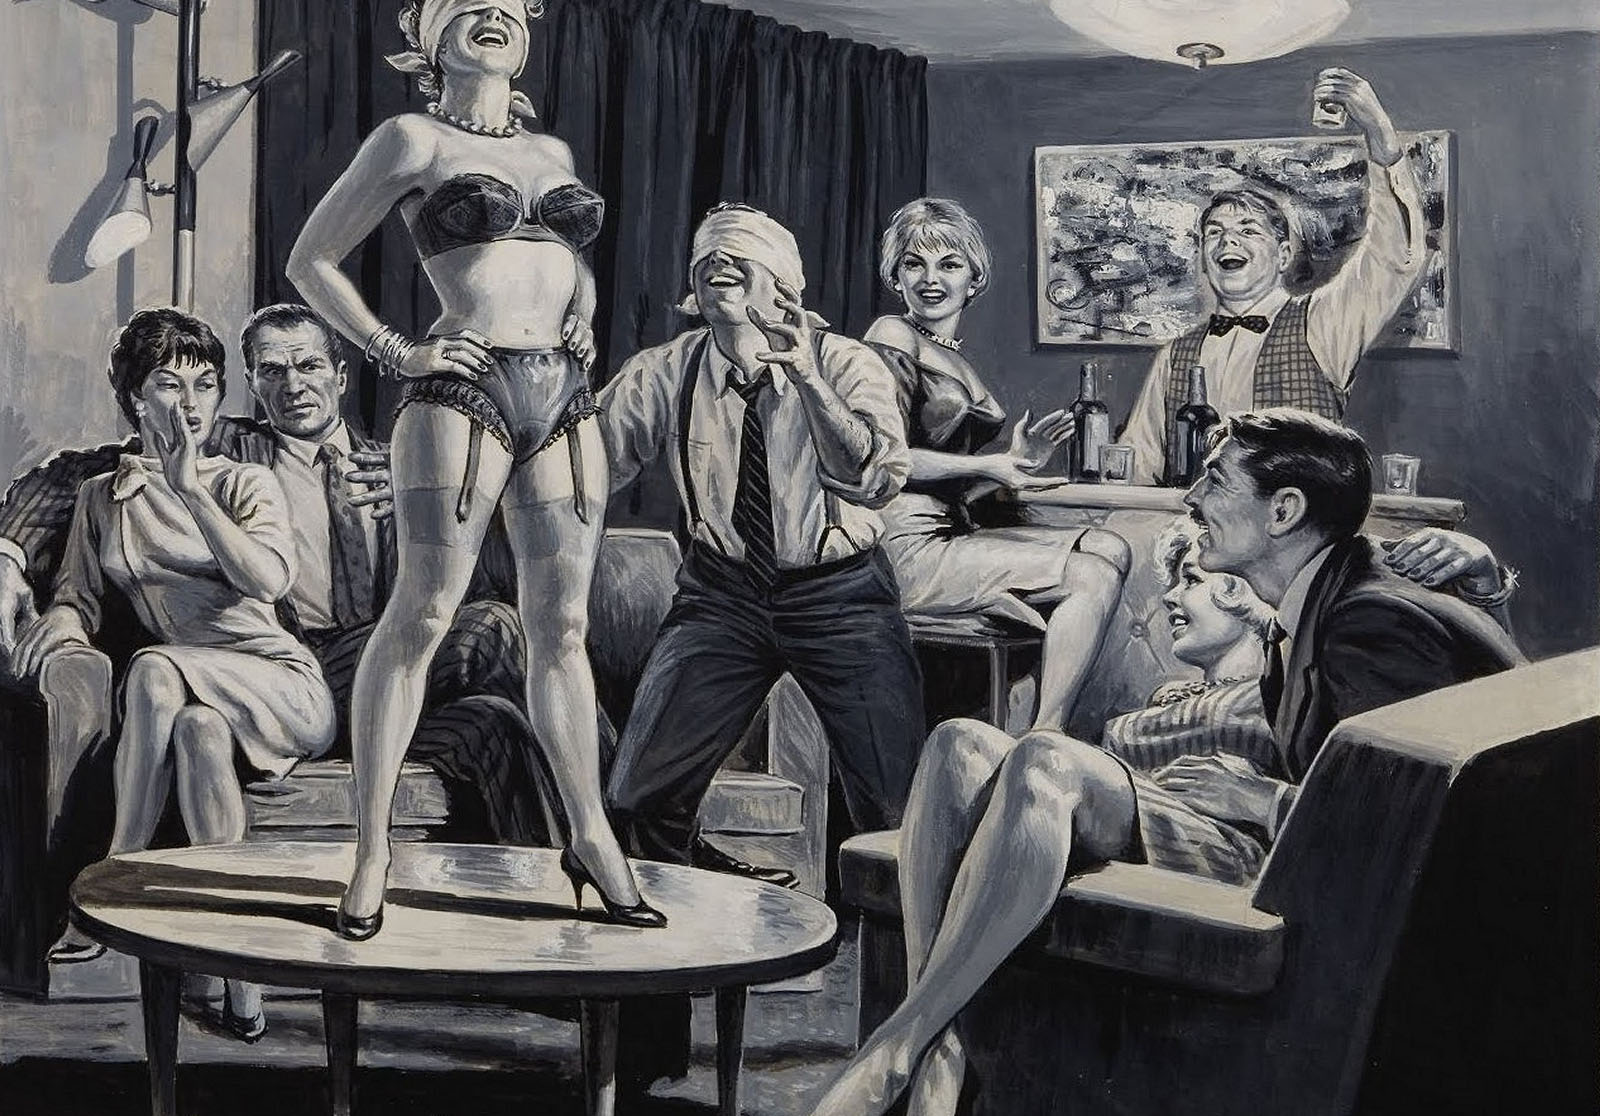 old-time-striptease-show.jpg